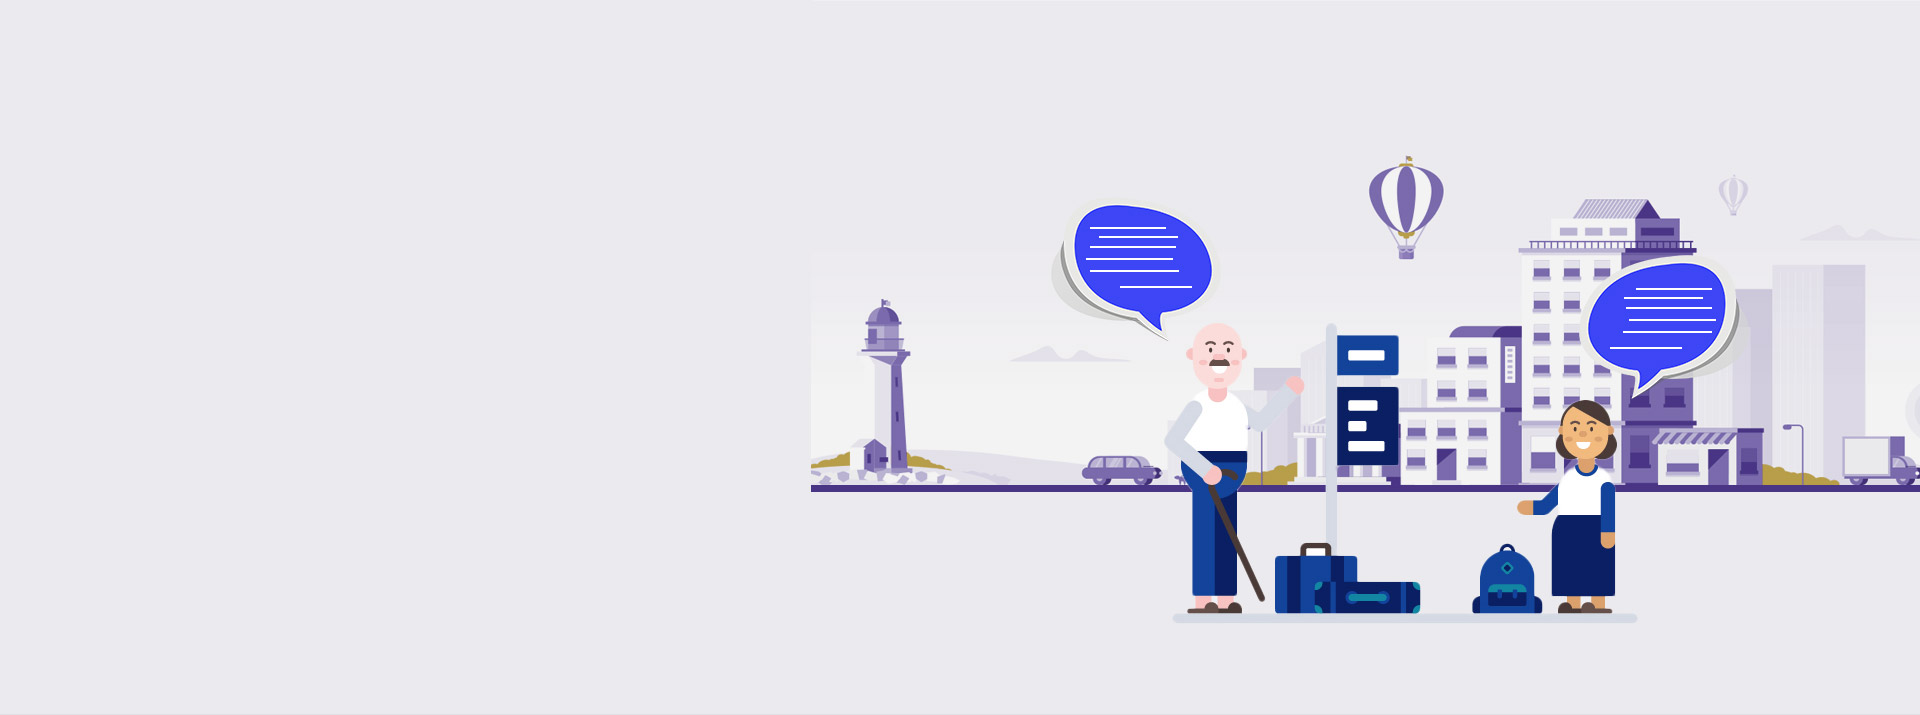 Banner image for hotel chatbot development services